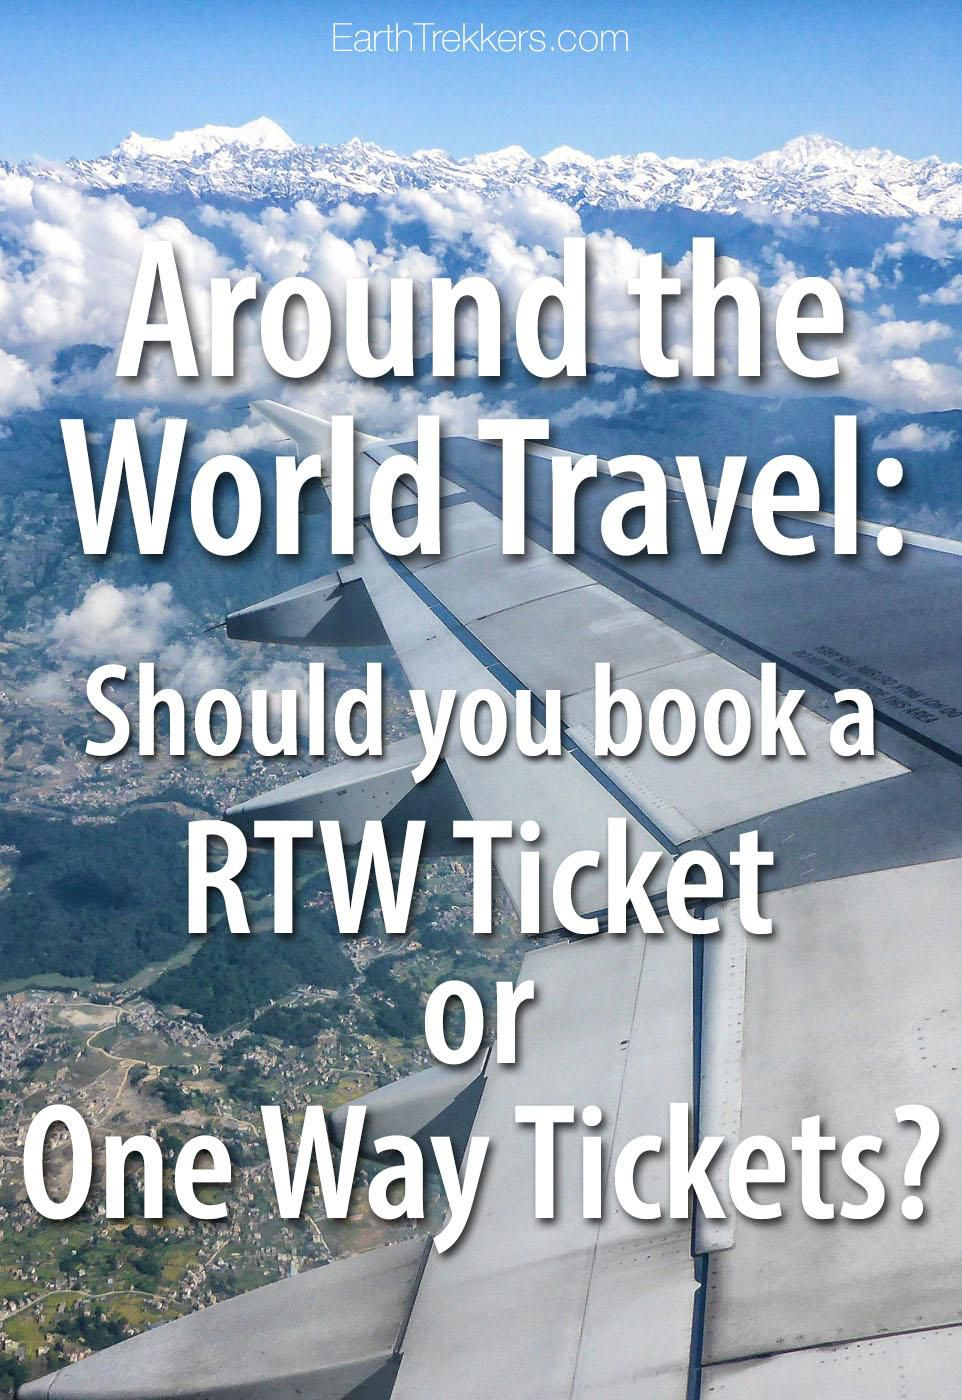 Around the World travel: should you book a RTW ticket or one way tickets? #rtw #aroundtheworld #traveladvice